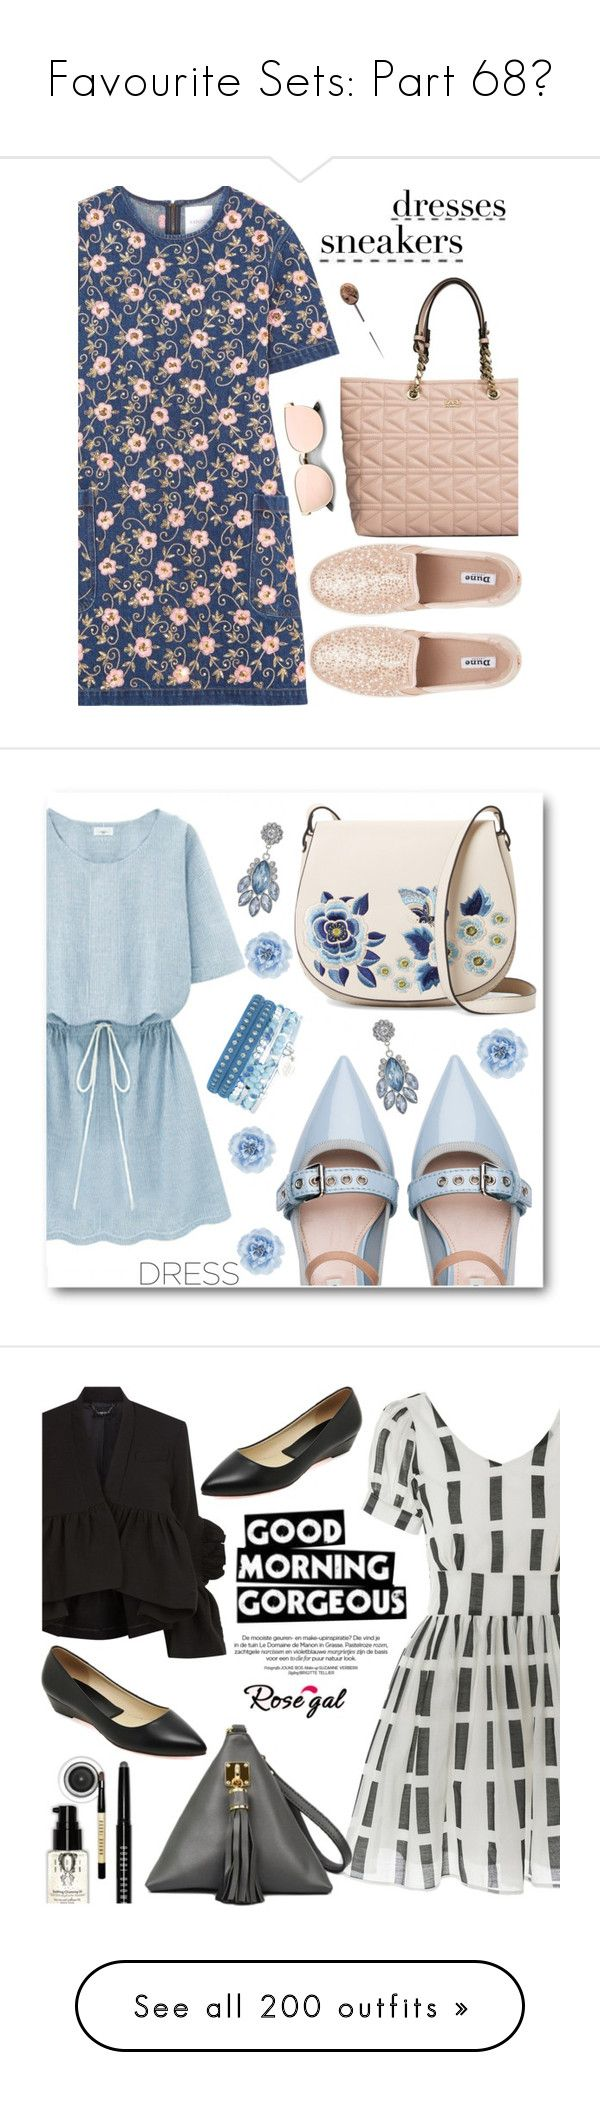 """""""Favourite Sets: Part 68❣"""" by moon-and-starss ❤ liked on Polyvore featuring Karl Lagerfeld, Ashish, womensFashion, SNEAKERSANDDRESSES, Miu Miu, French Connection, Monsoon, dress, dreamydresses and Rachel Comey"""